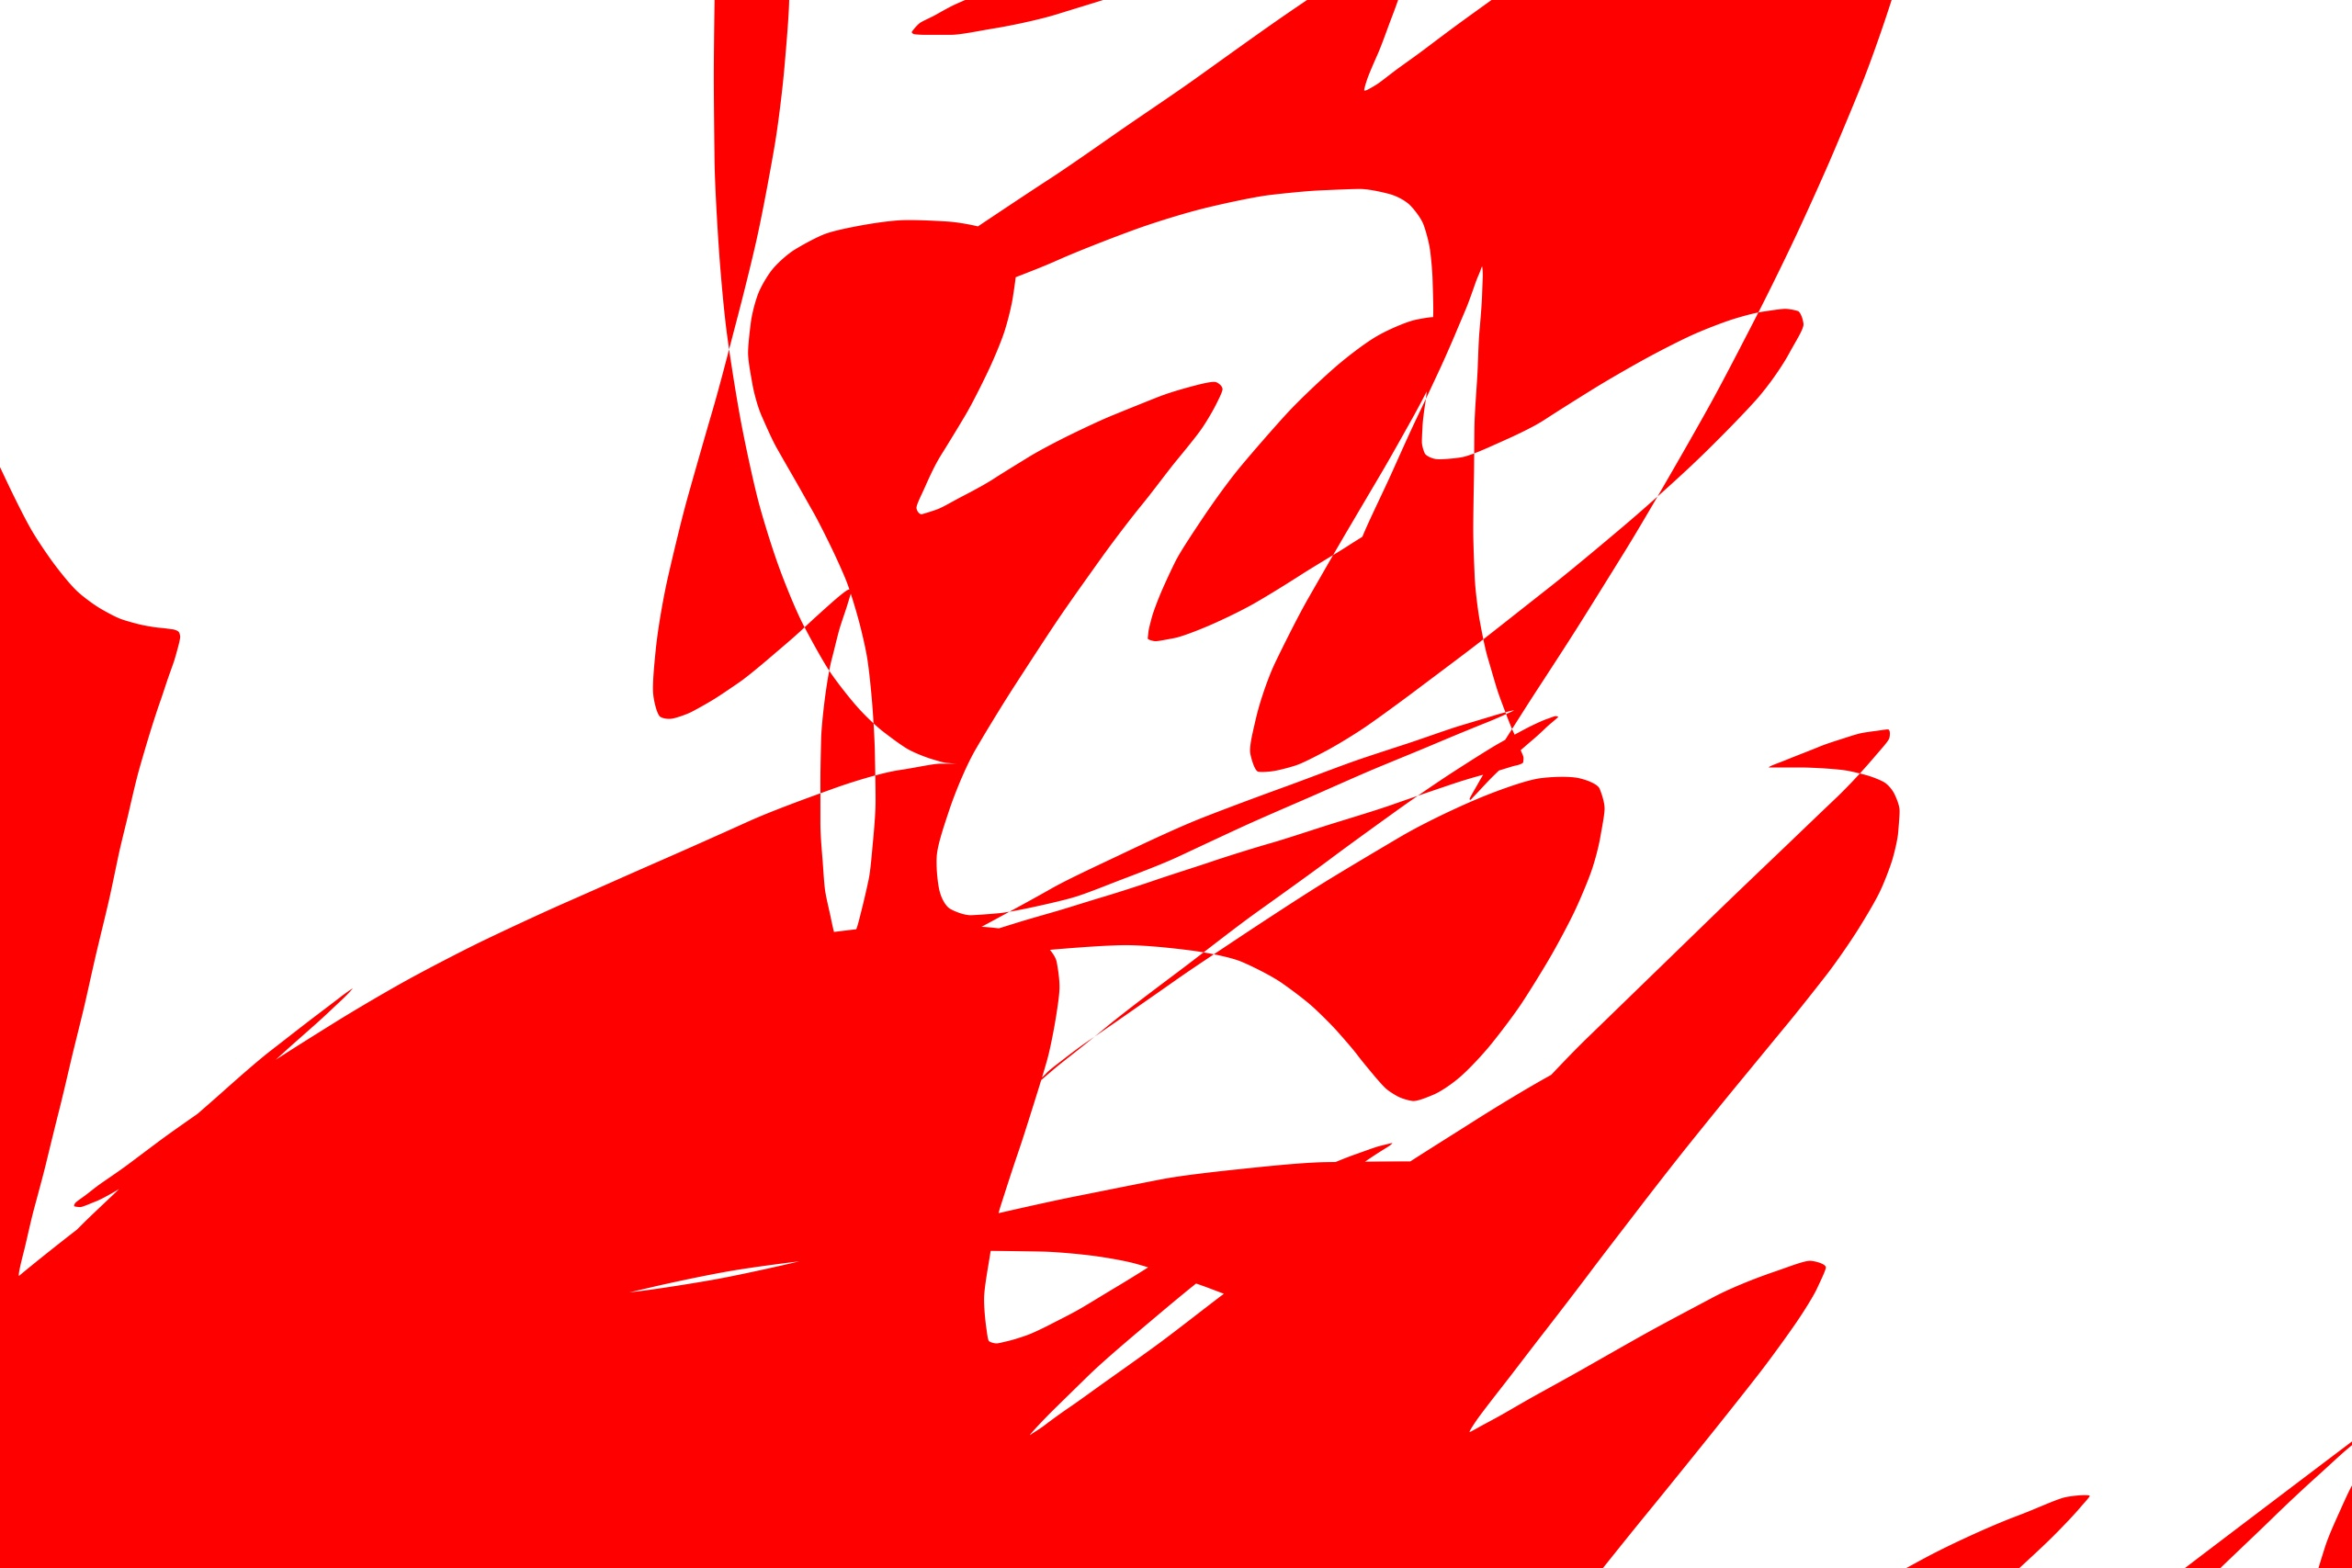 selfie abstract red and white